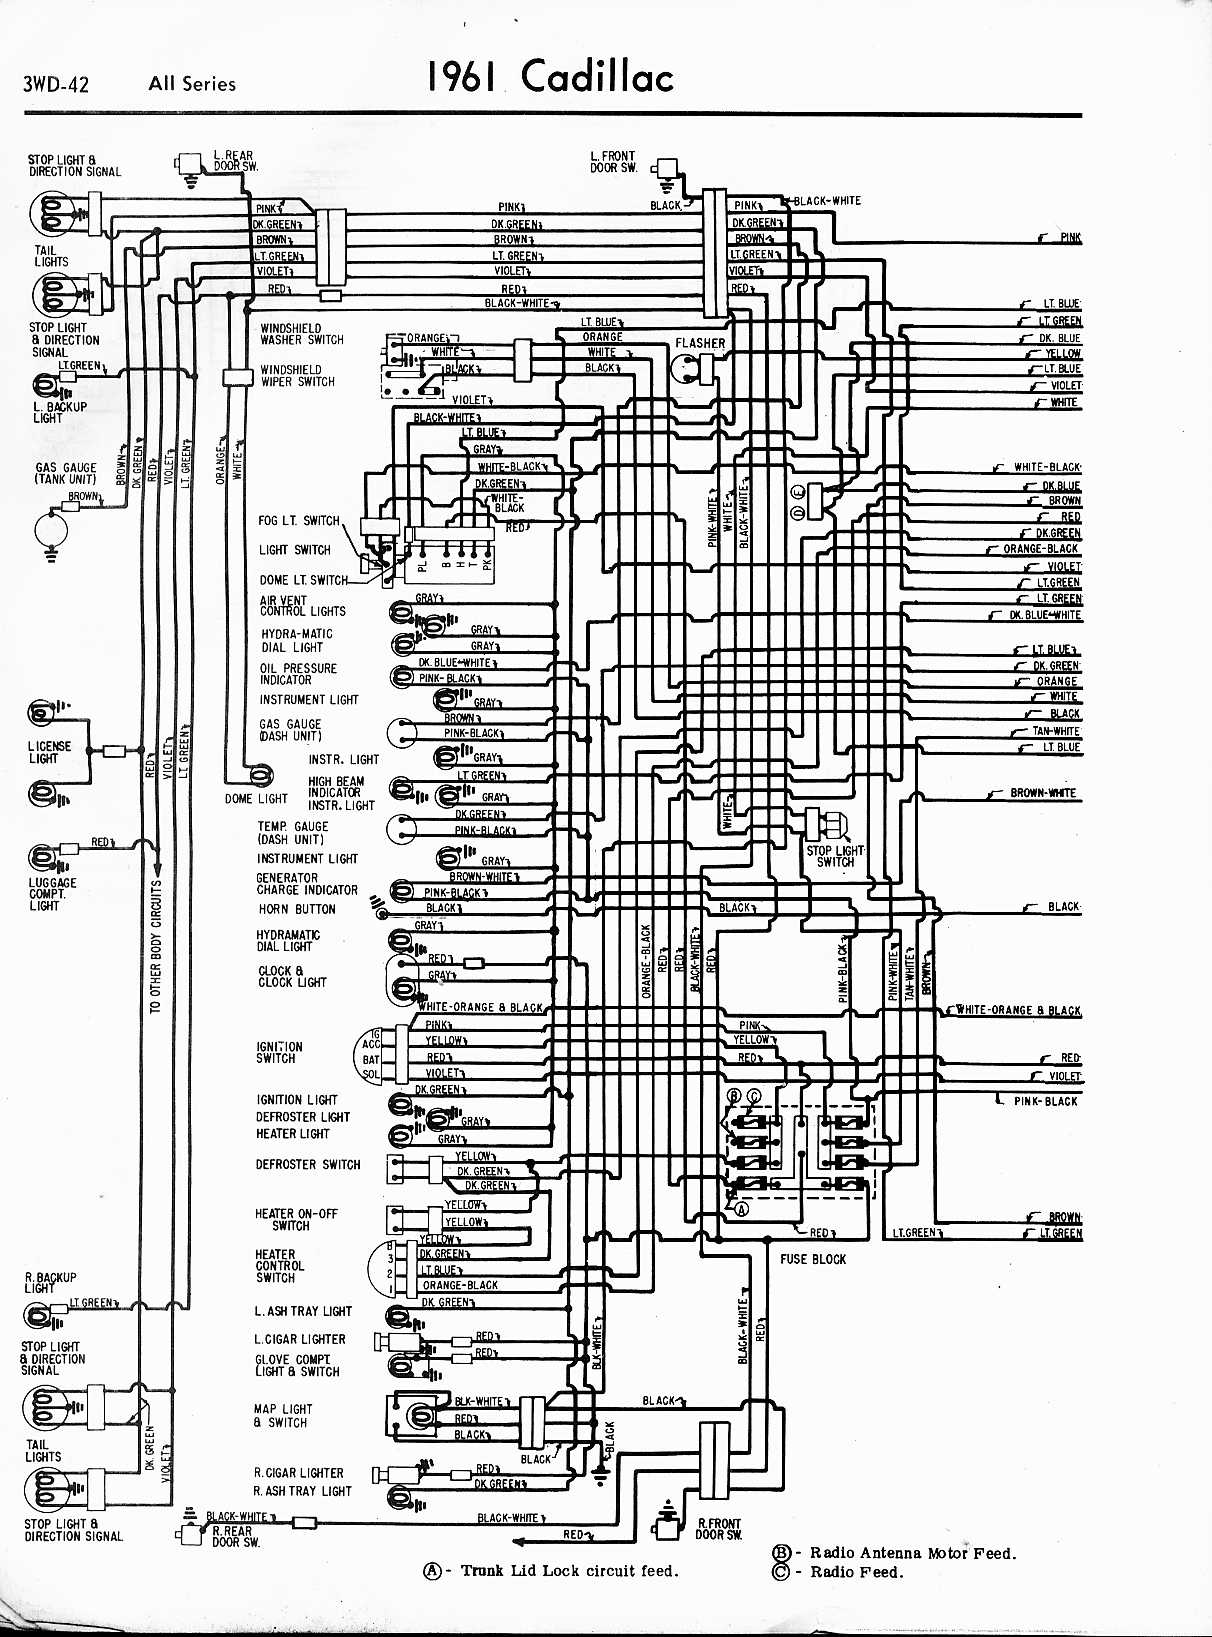 1961 Cadillac Wiring Diagram Opinions About 1970 Diagrams 1957 1965 Rh Oldcarmanualproject Com 1956